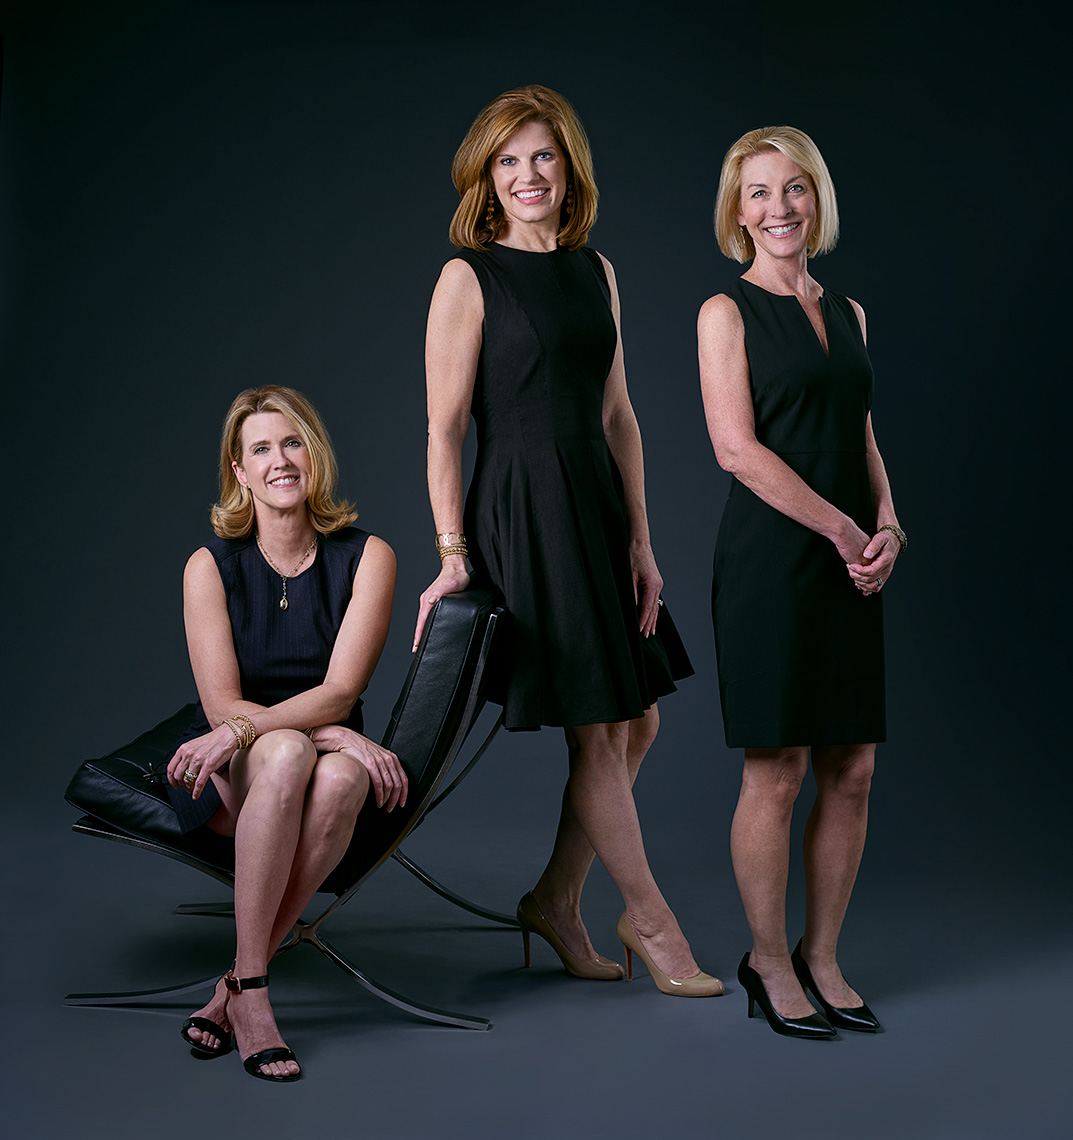 Group portrait of the Buford Muller Team from Briggs Reality in Dallas, Texas by photographer John Derryberry